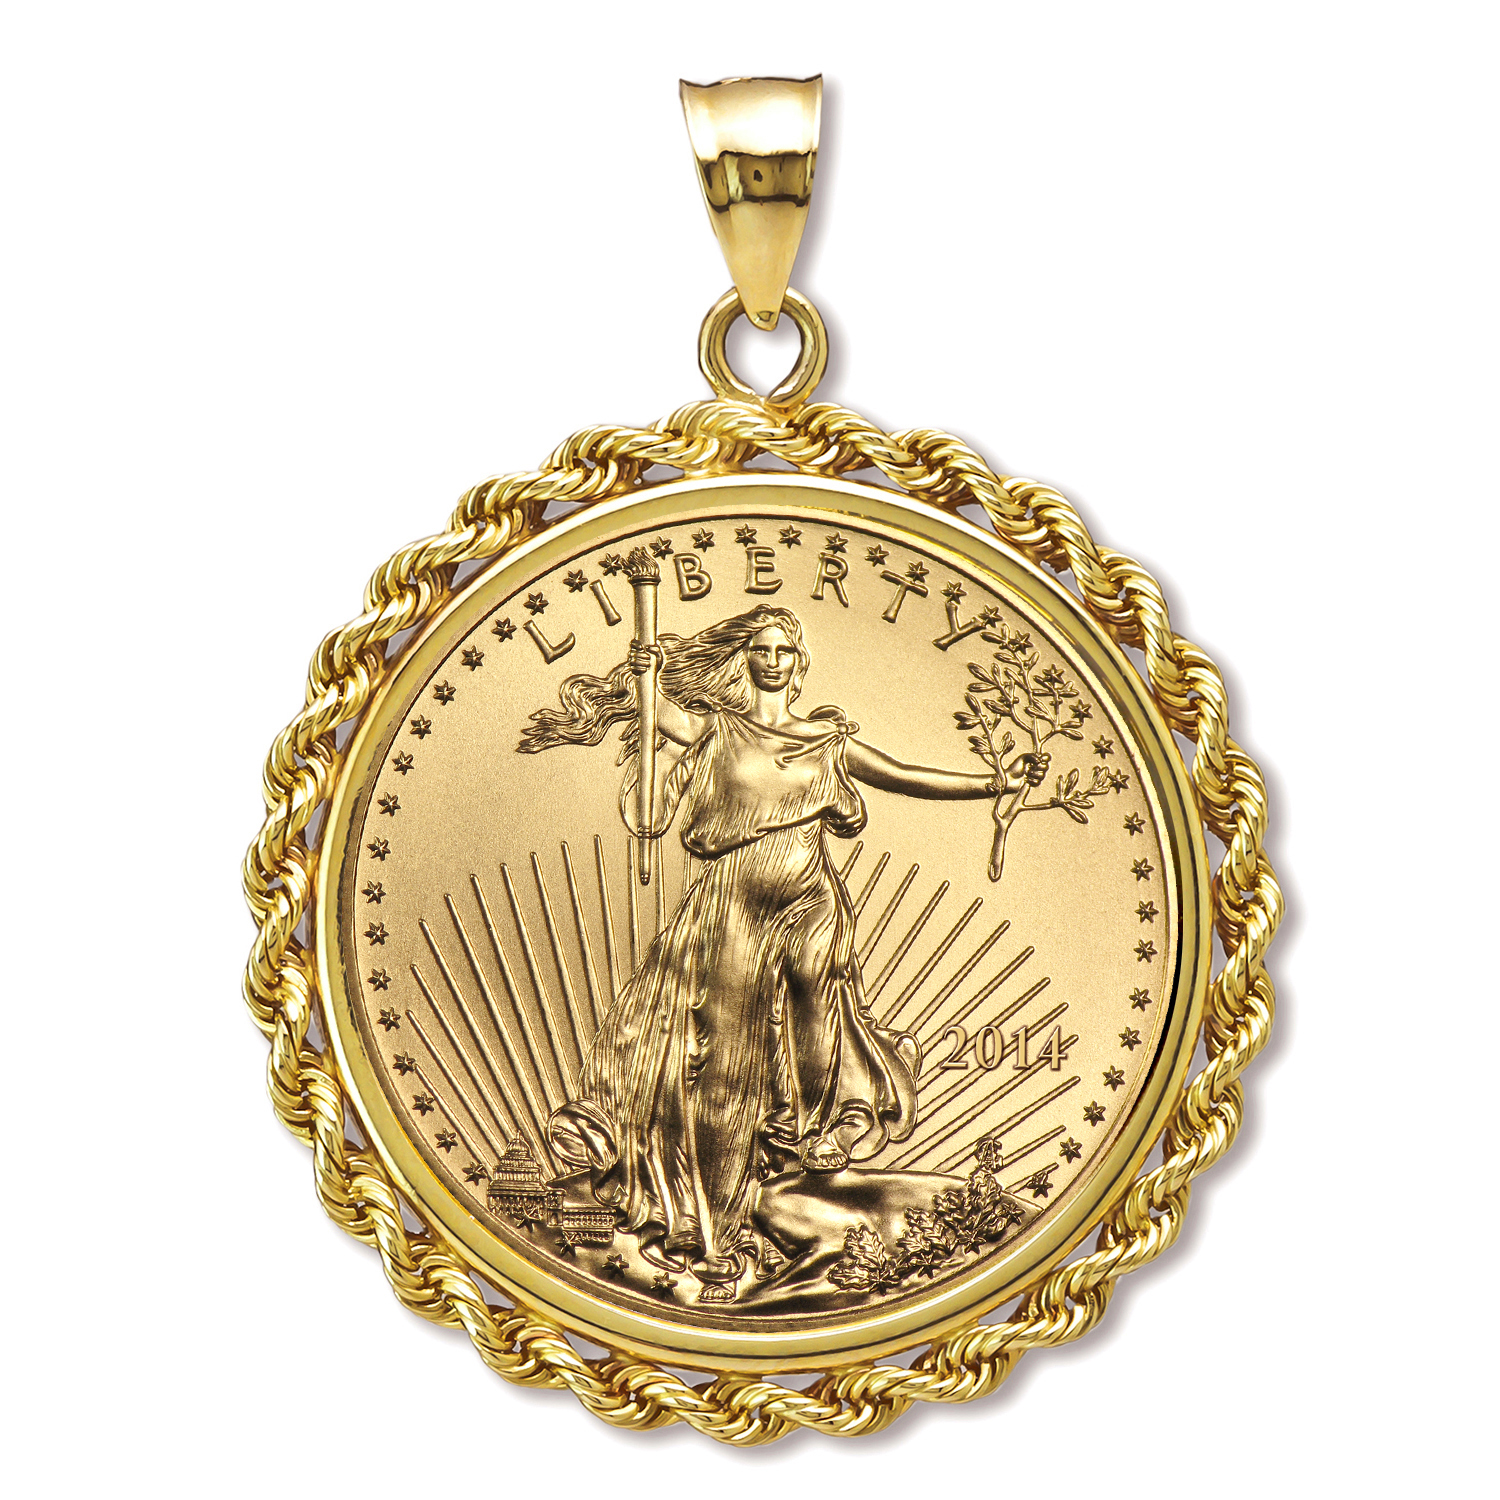 2014 1 oz Gold Eagle Pendant (Rope-Prong Bezel)